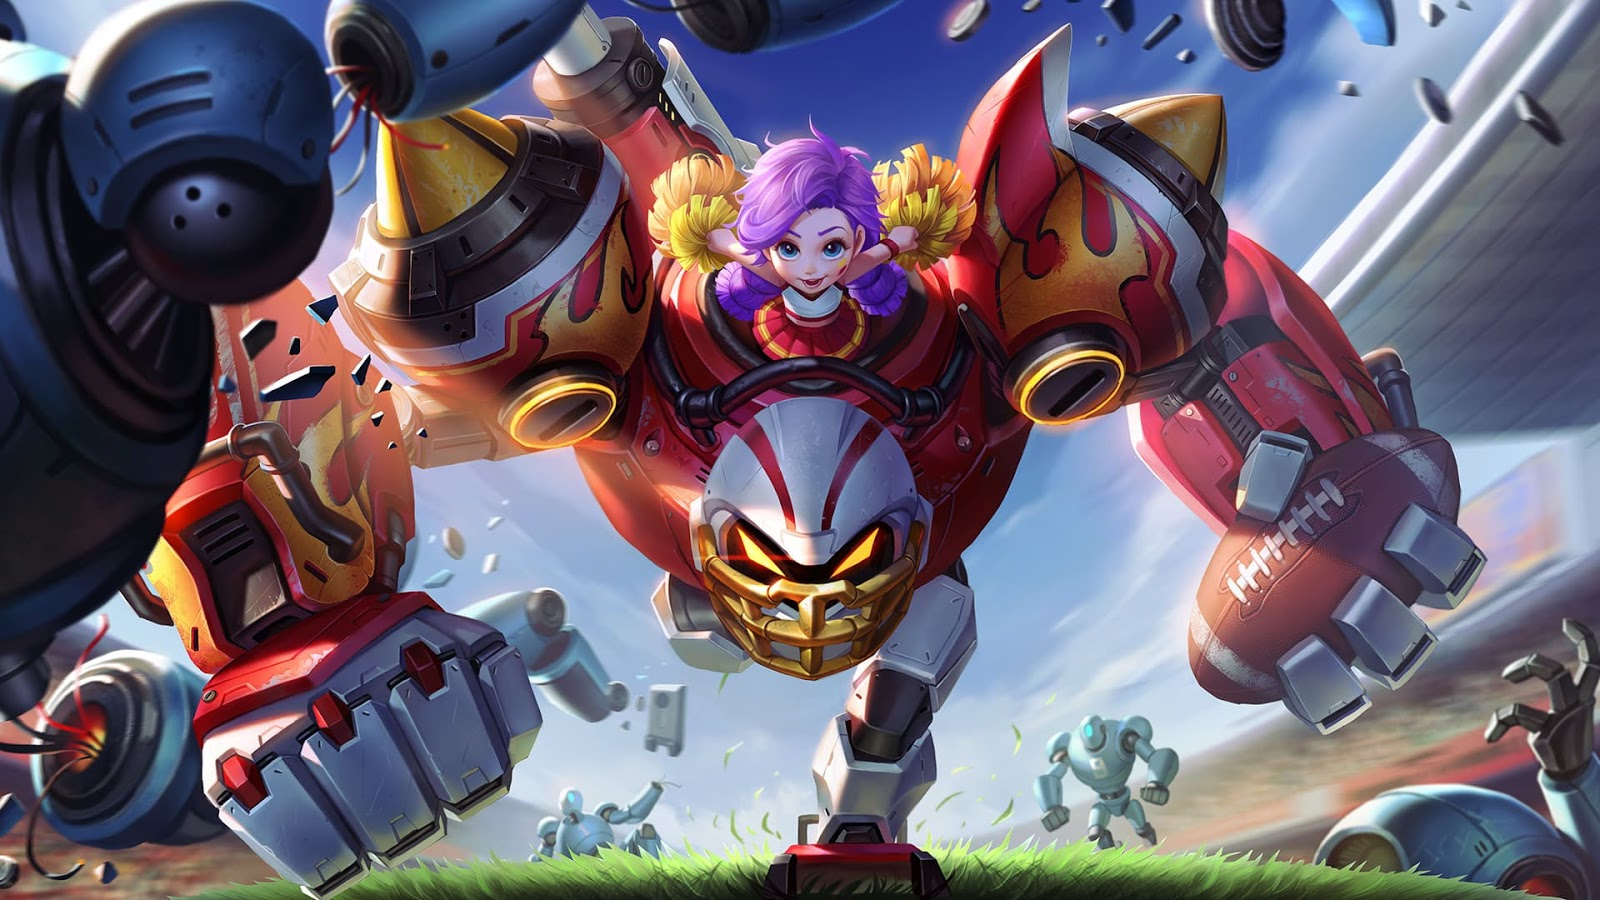 Wallpaper Jawhead Foo Quarterback Skin Mobile Legends HD for PC